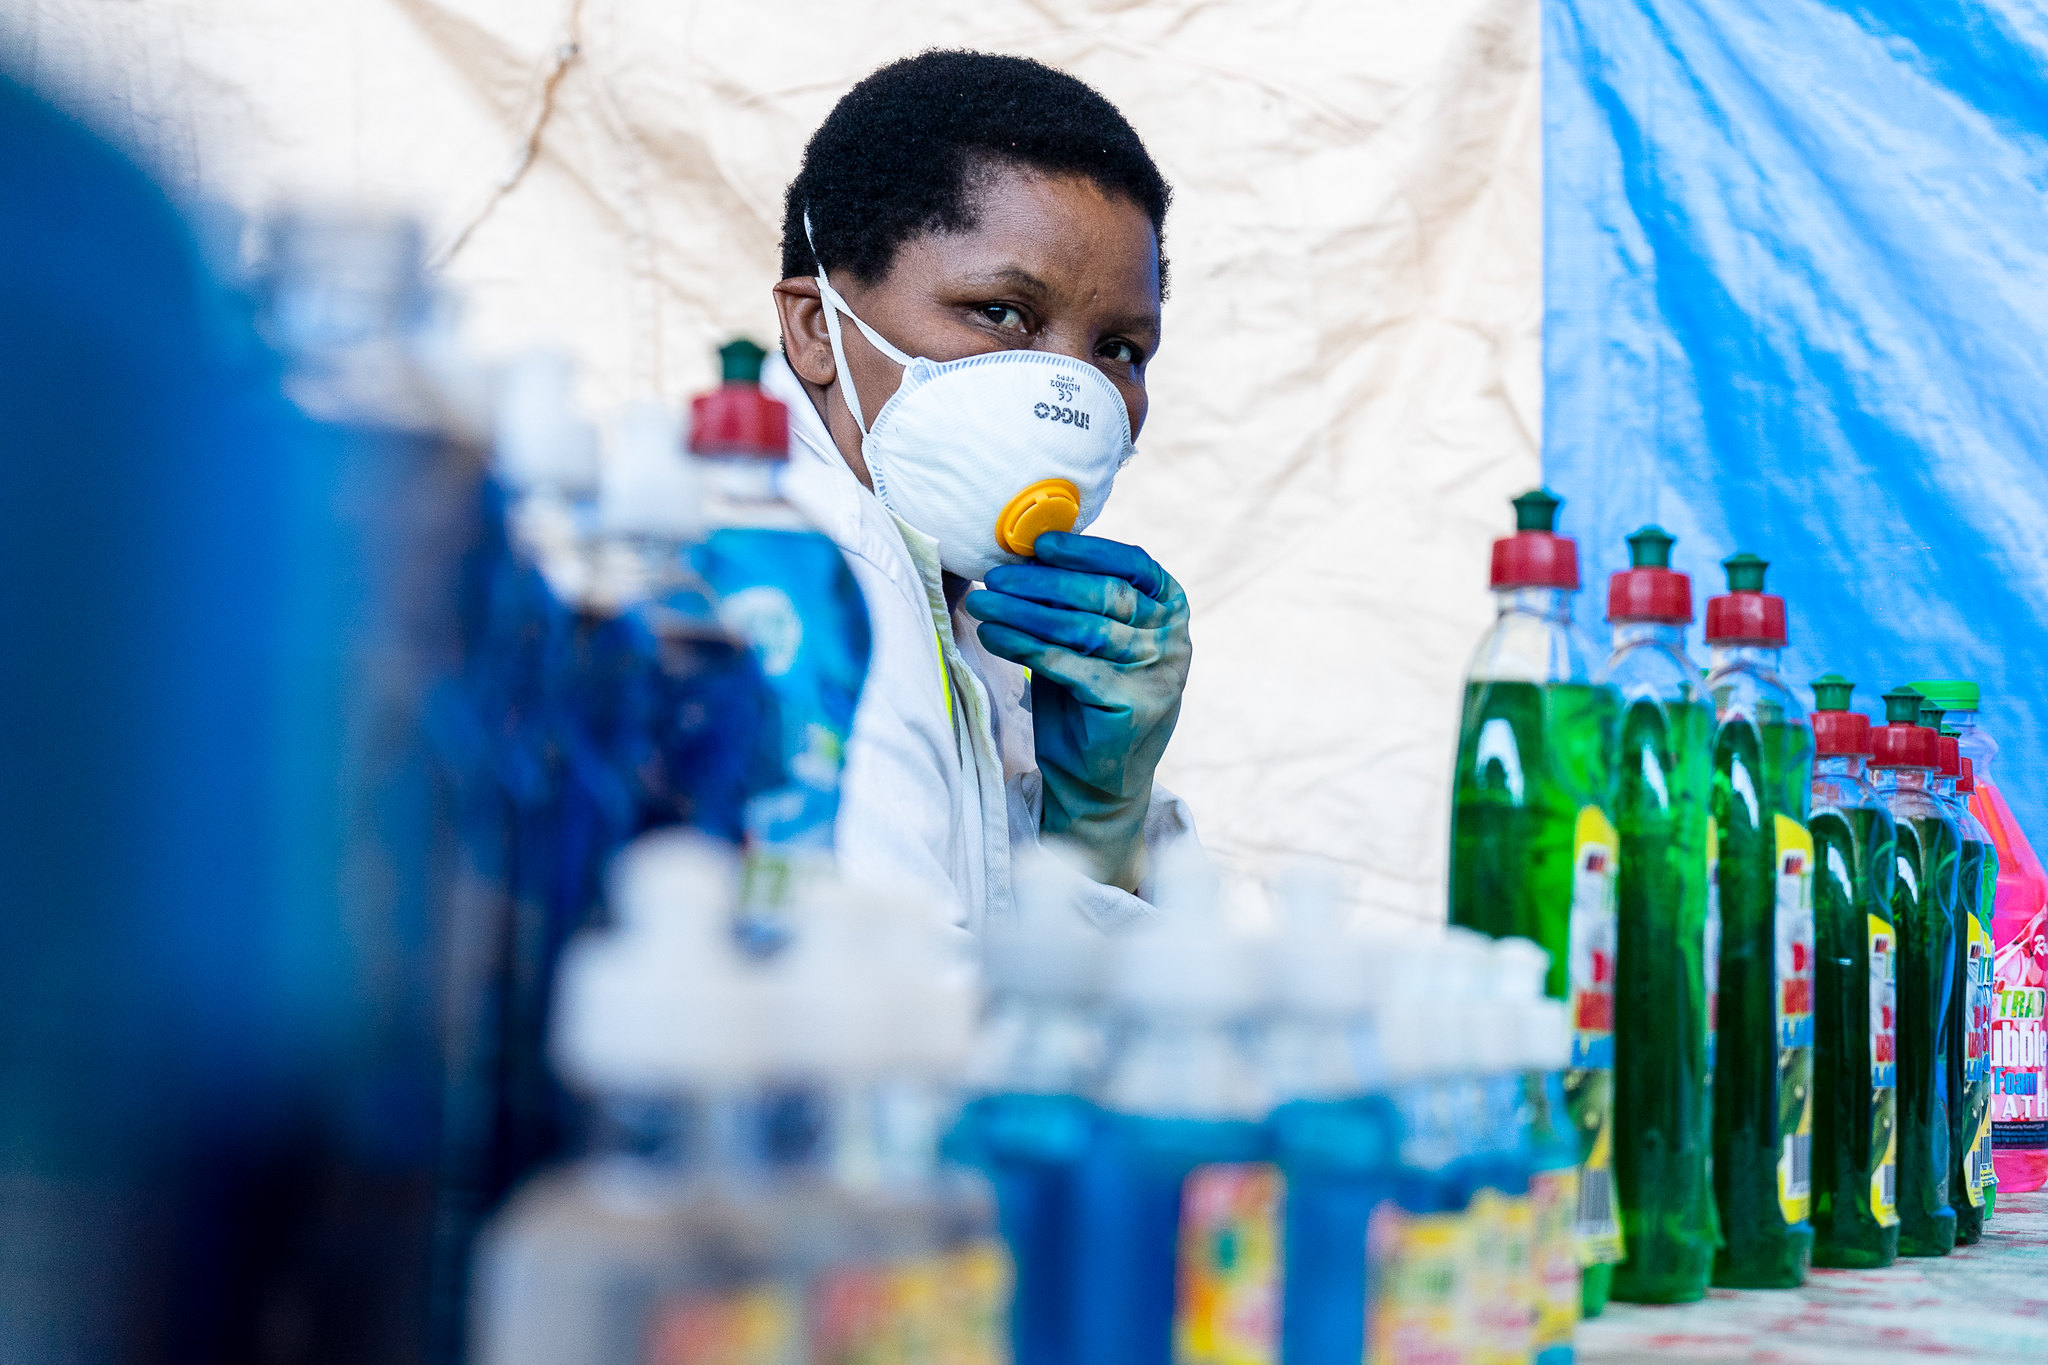 A Zimbabwean detergent company started making a hand sanitizer to protect against COVID-19.